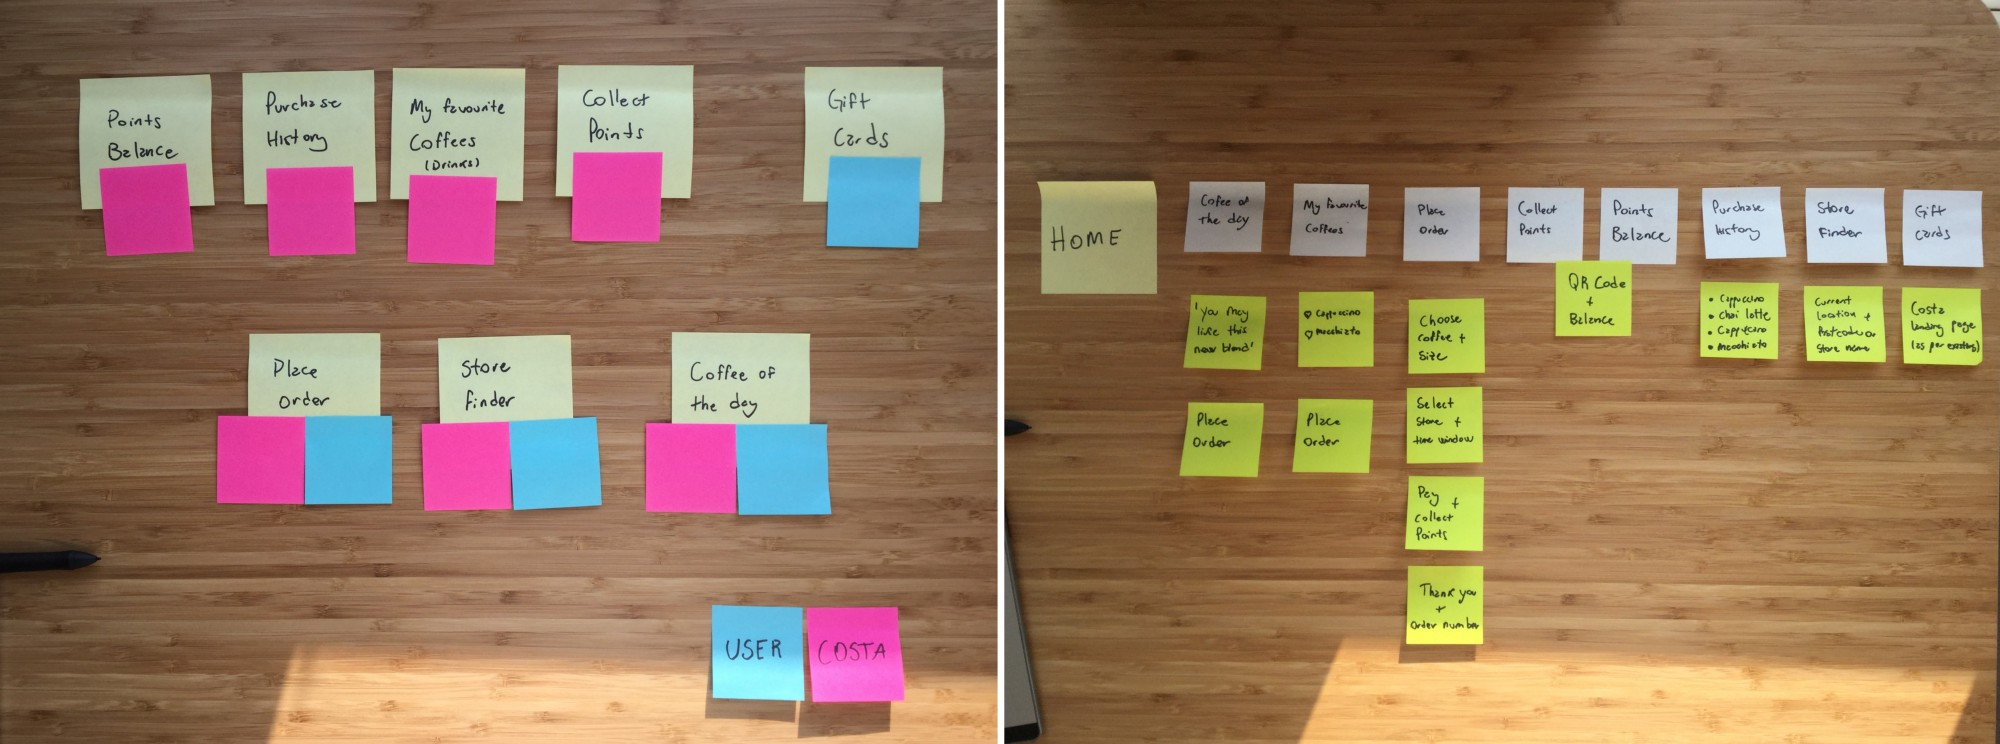 Understanding User Needs and laying out the new User Journey